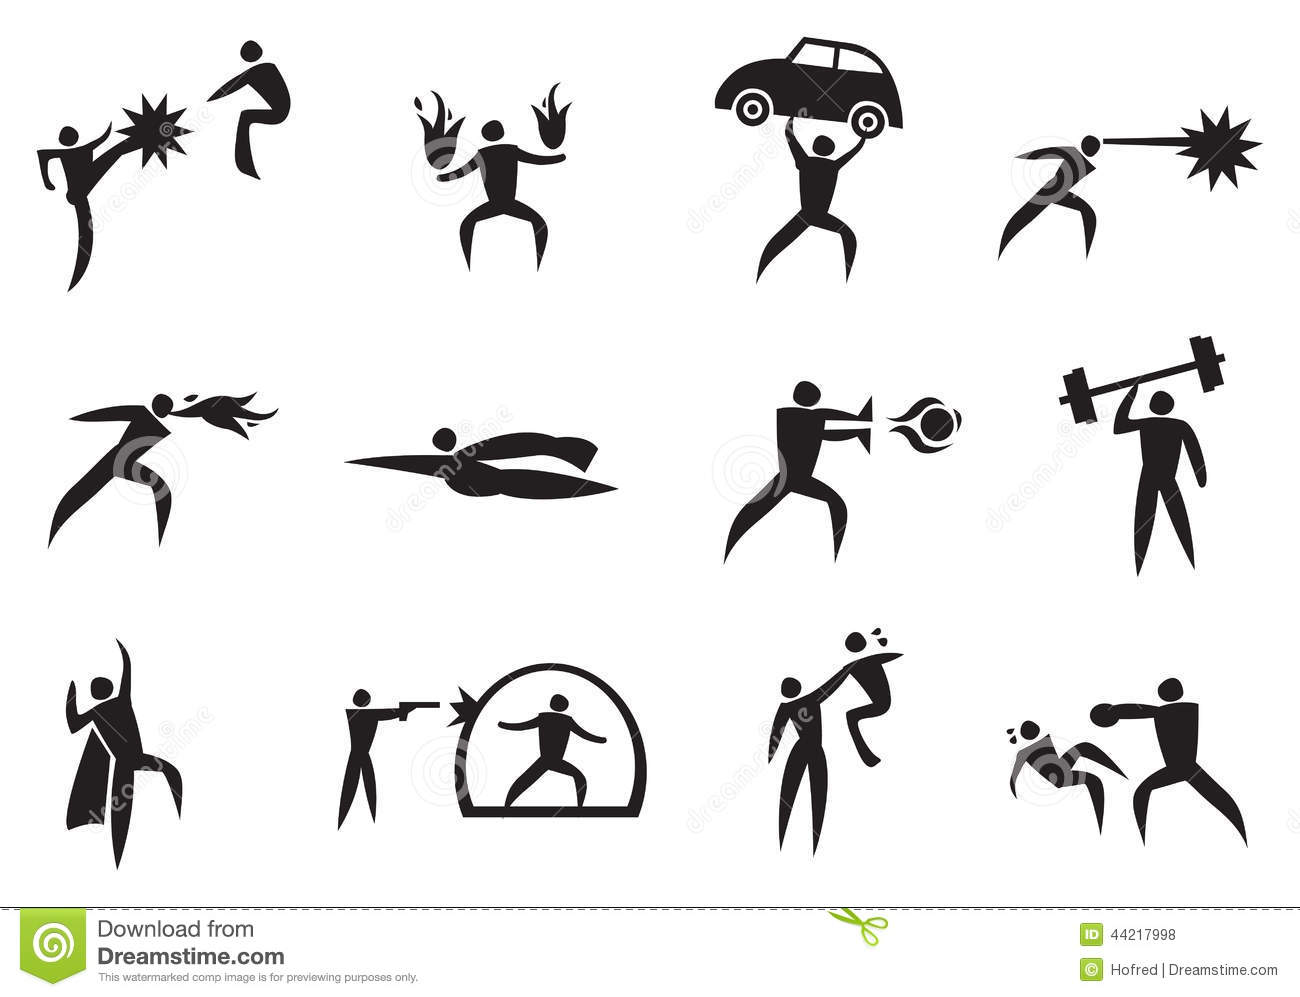 Super powers clipart banner black and white download Super Hero With Super Power Icon Set Stock Vector - Image: 44217998 banner black and white download